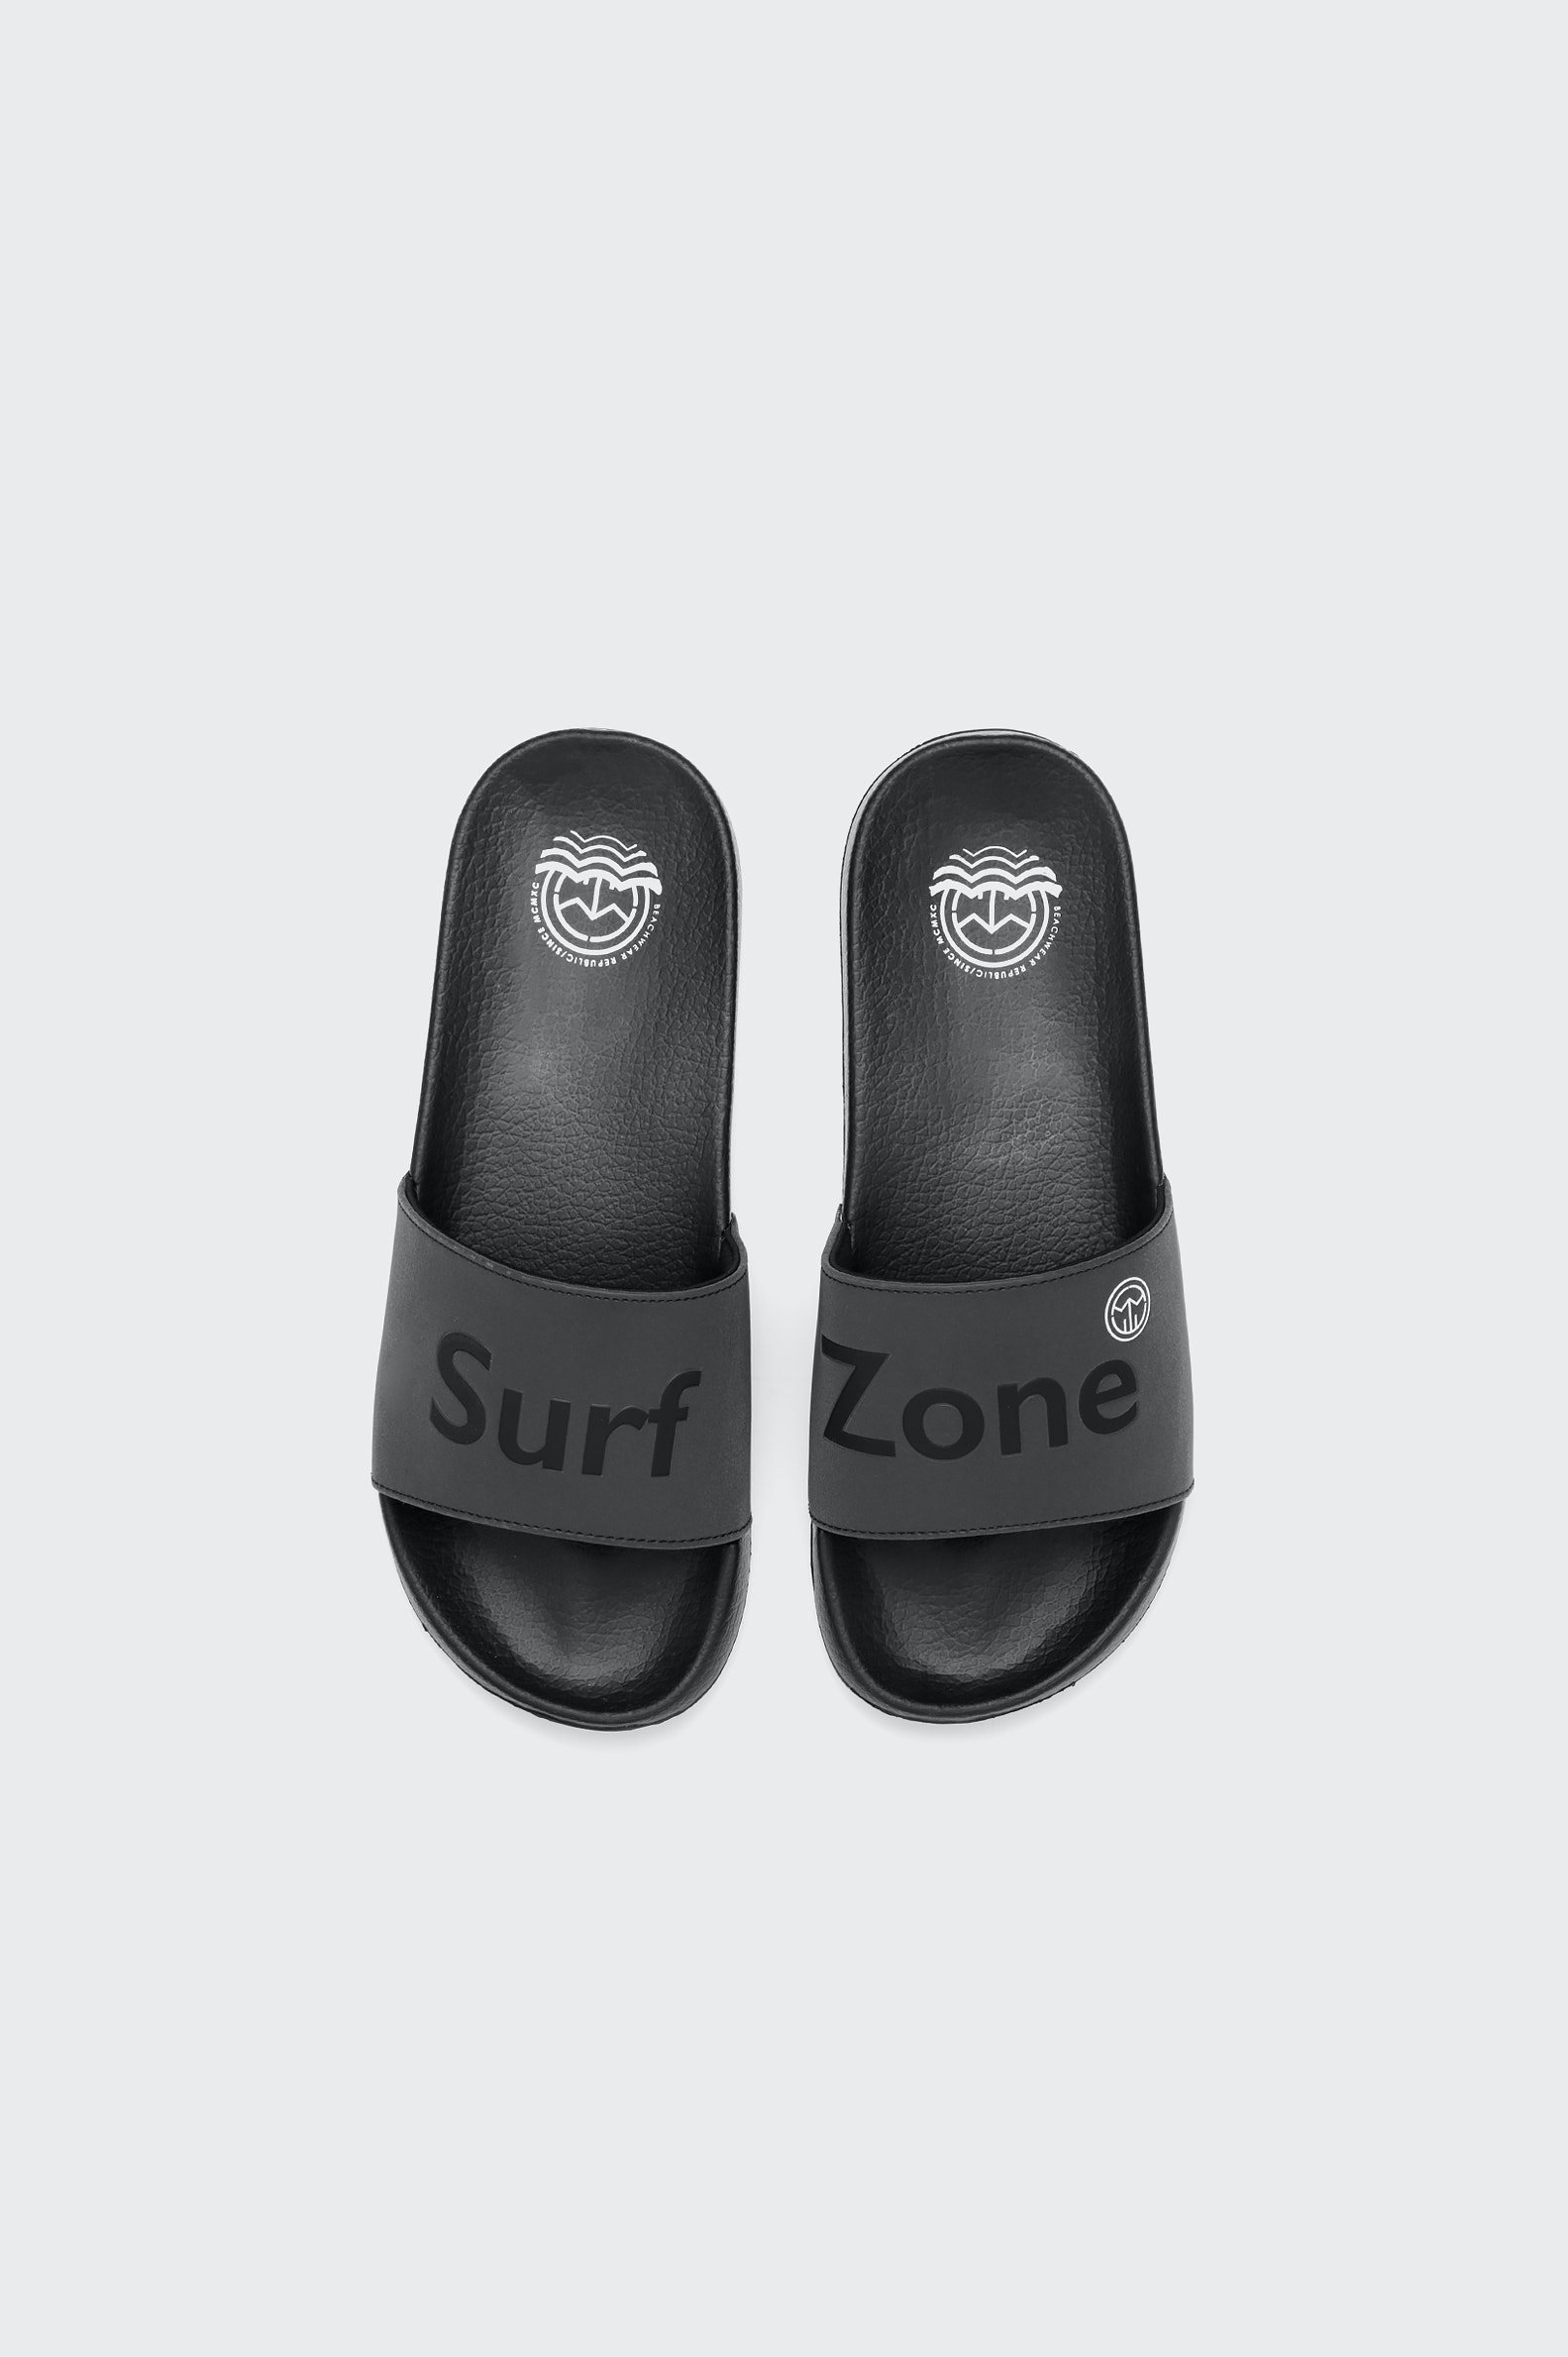 CHANCLA CASUAL POLINESIA SURF ZONE MN HOMBRE